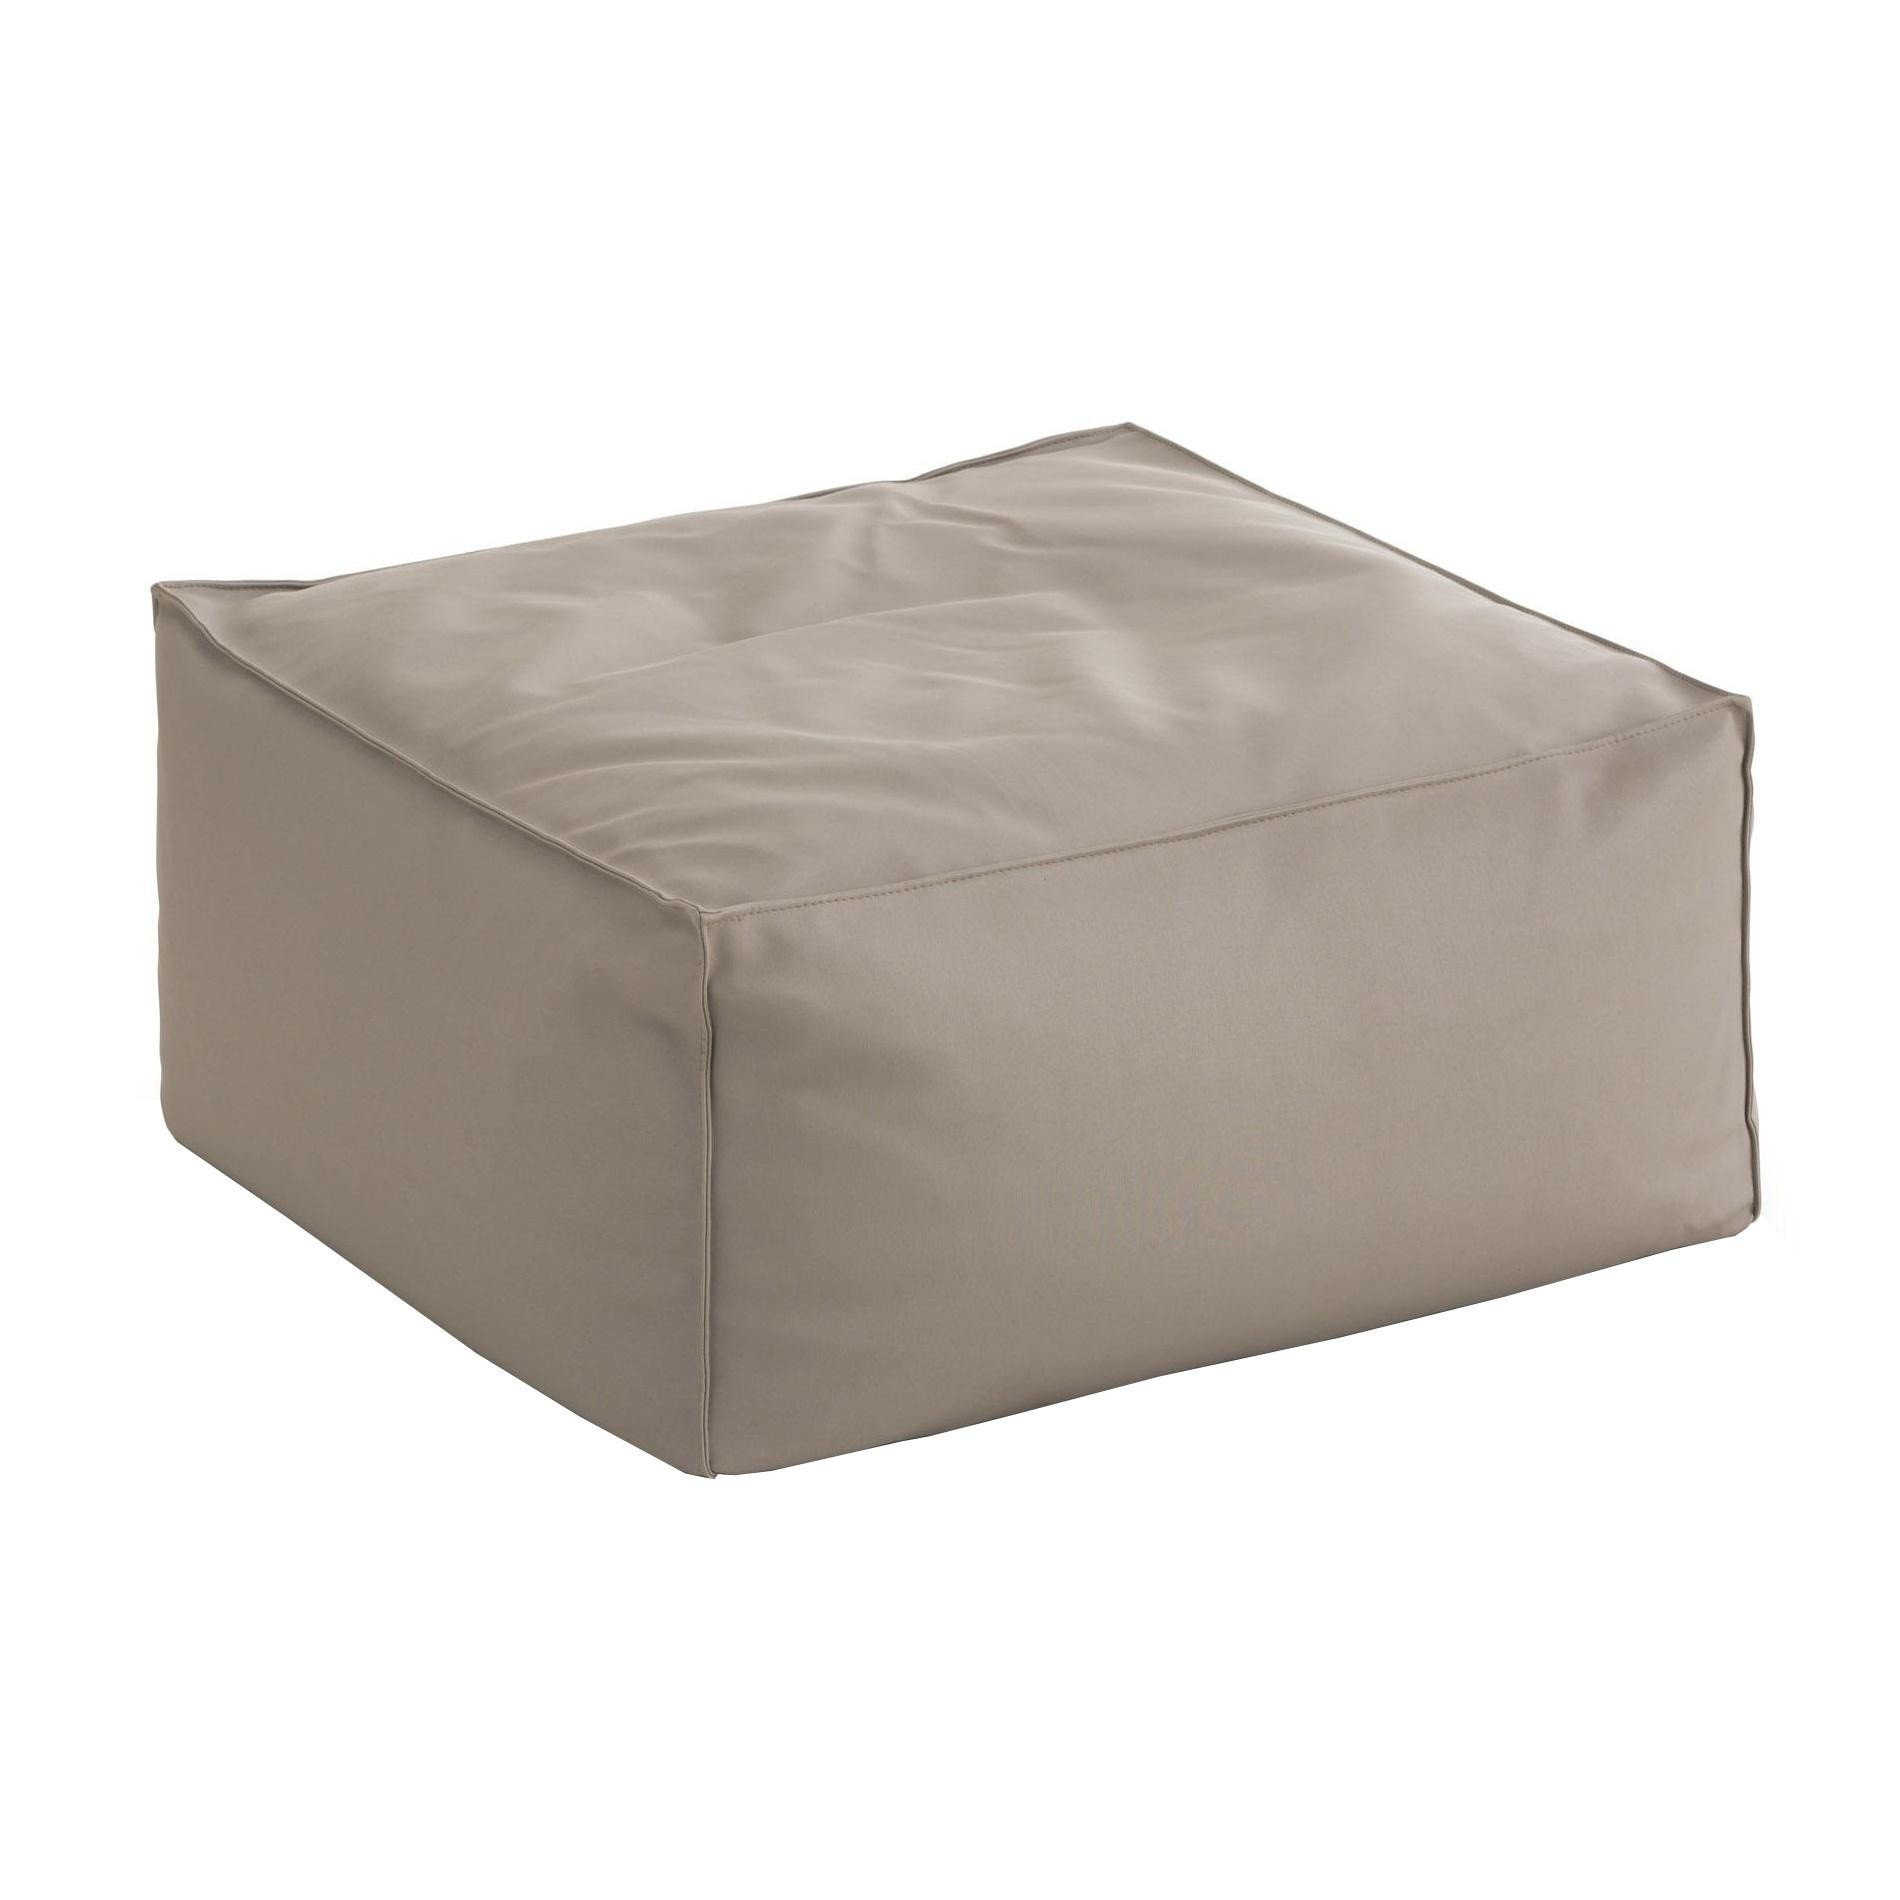 Gandia Blasco Sail Outdoor Pouf Seat Cushion Ambientedirect